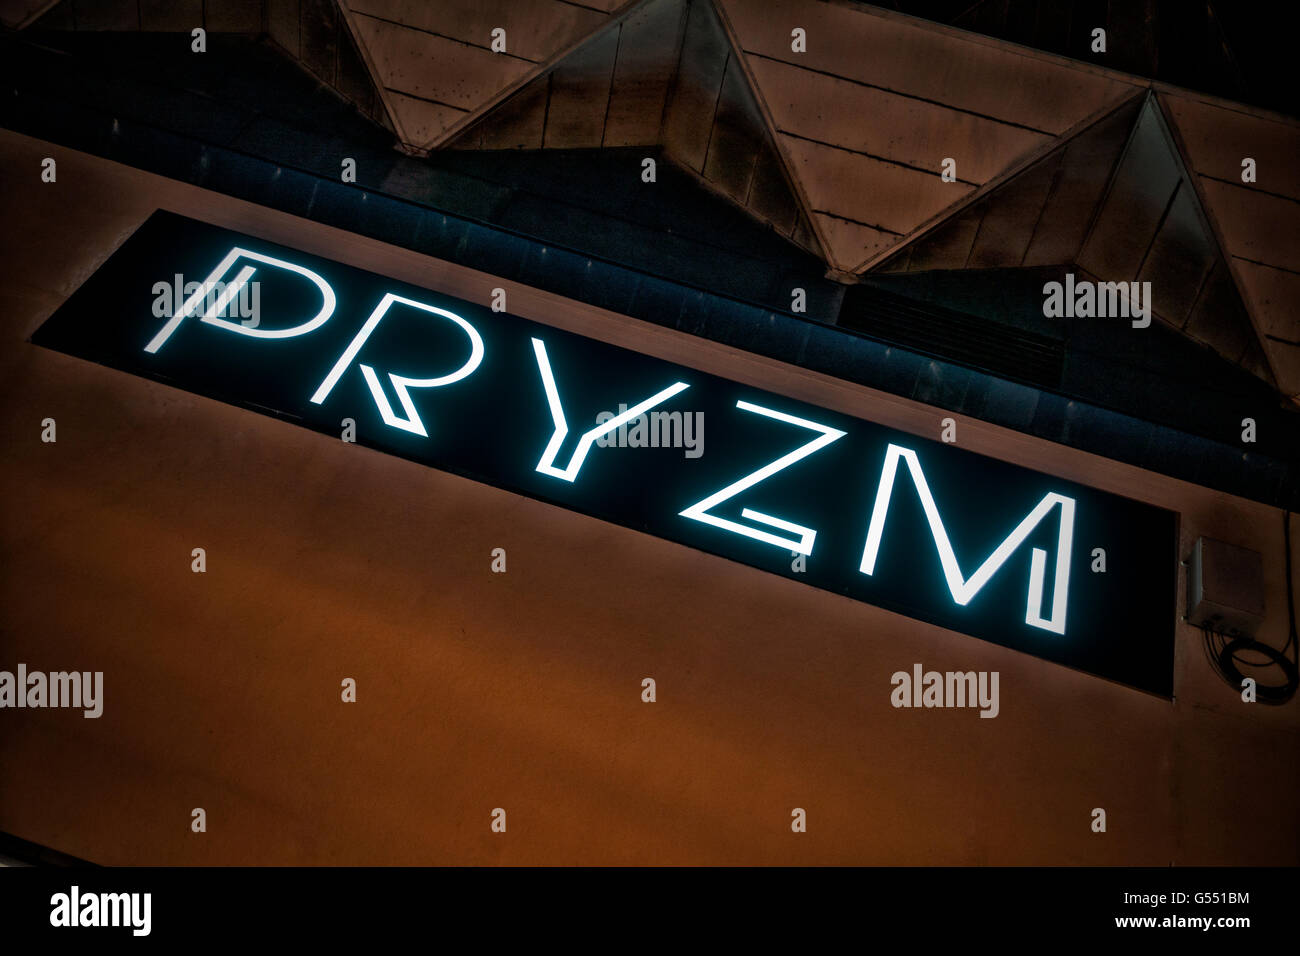 PRYZM - The Best Nightclub and Latenight Bar Experience in Brighton Sussex - Stock Image